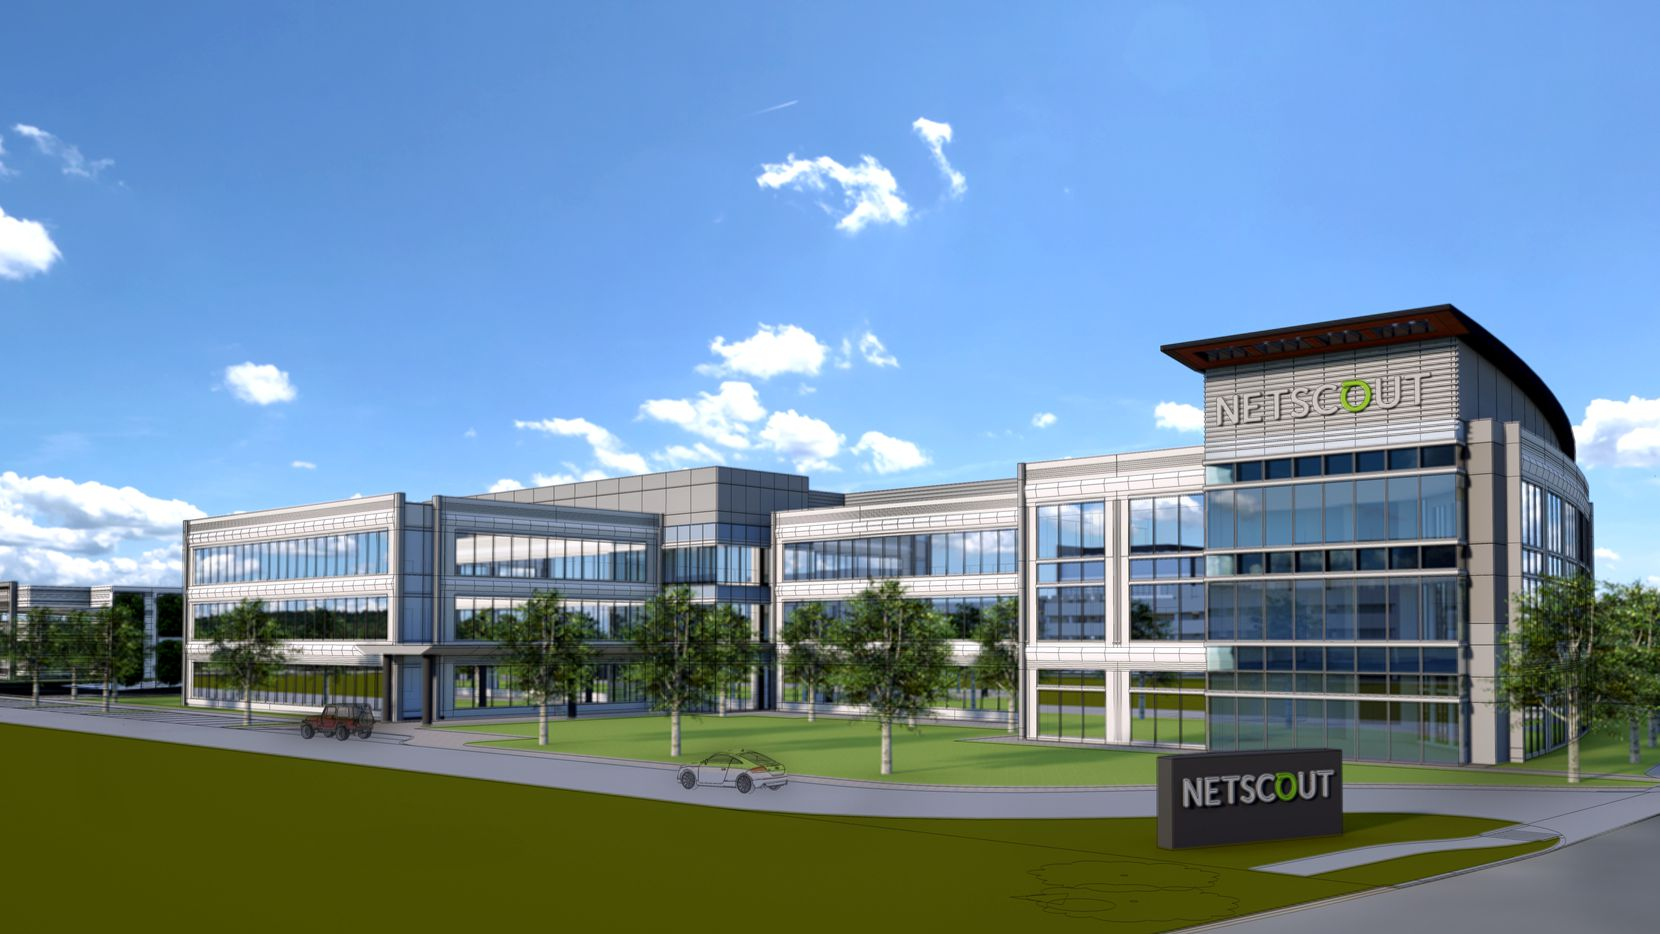 NetScout will move from Plano to a three-story office campus to be built in Allen.